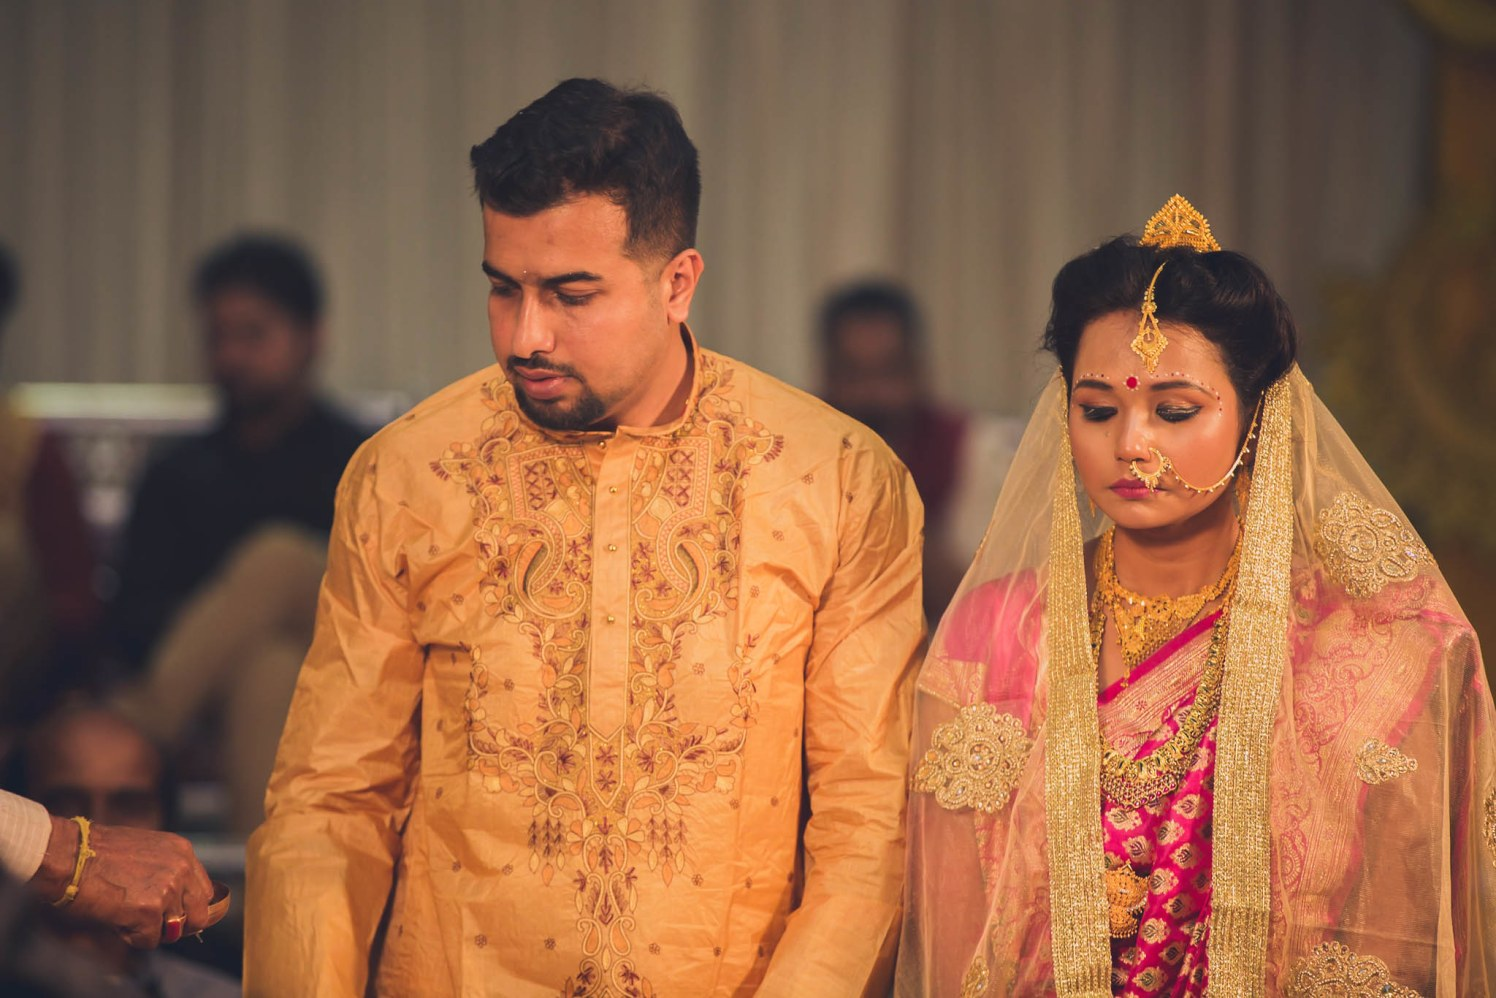 Pious acts! by Patrick Joseph Wedding-photography | Weddings Photos & Ideas